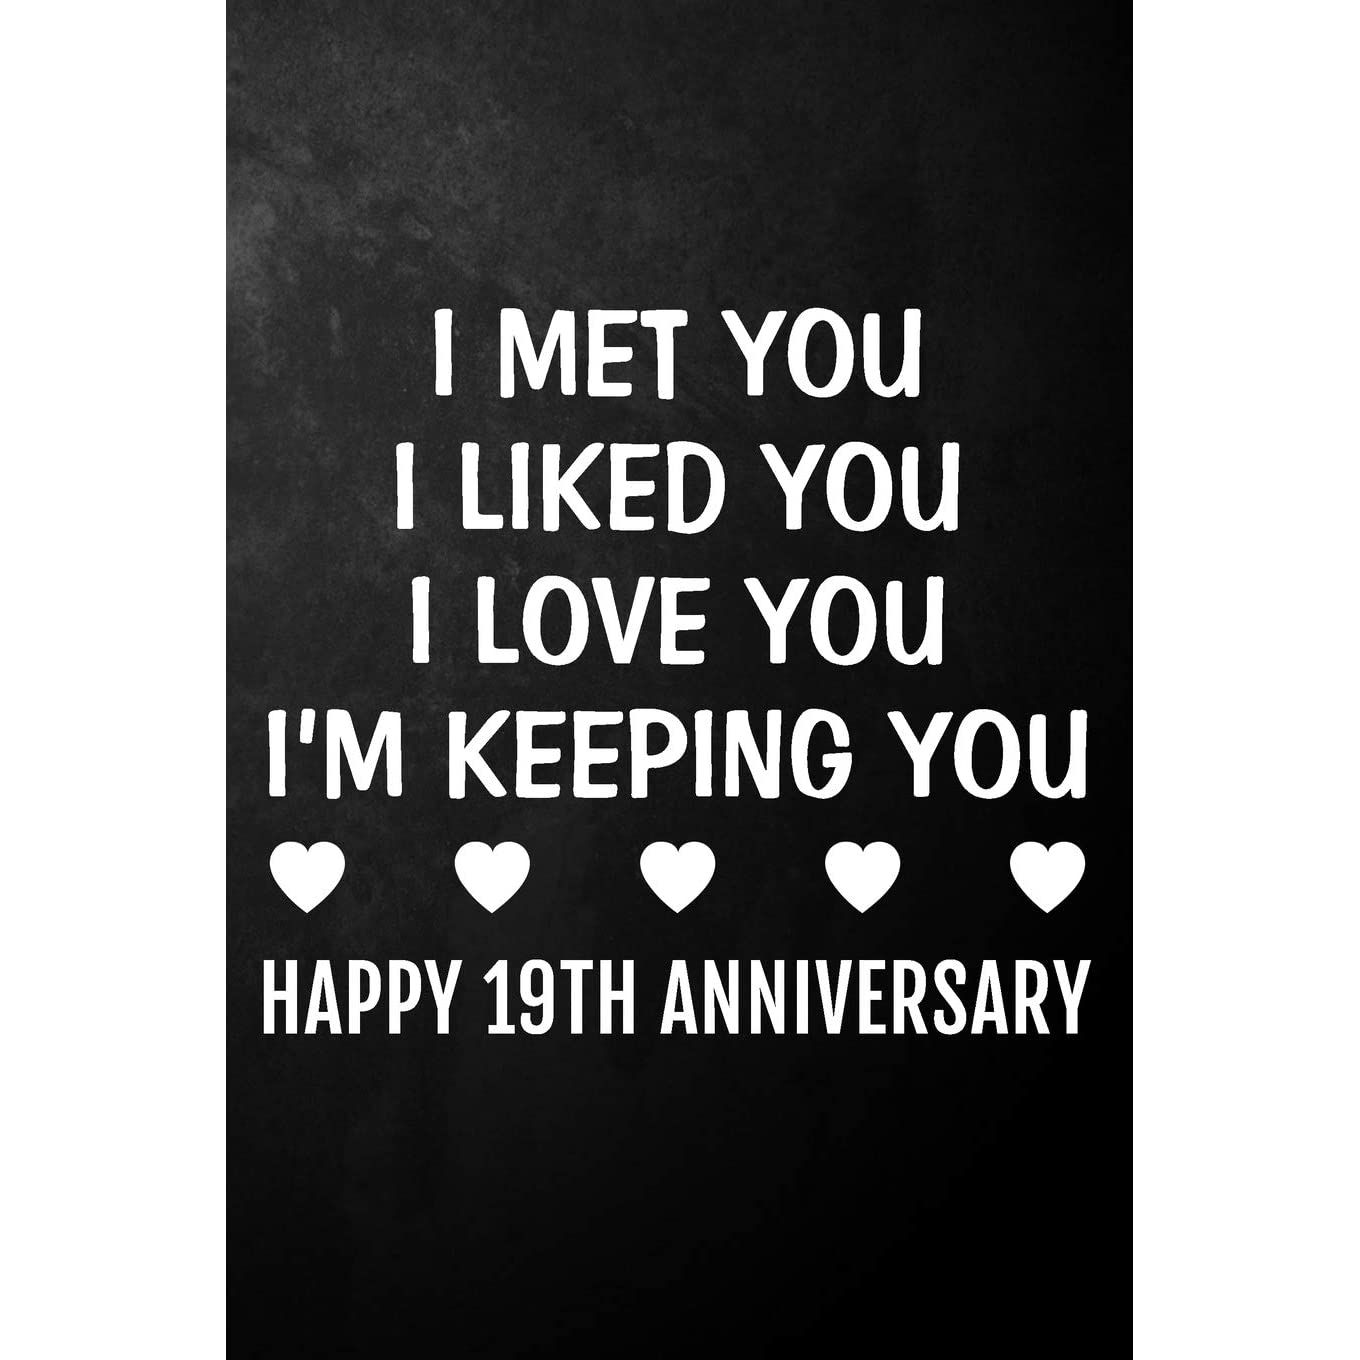 I Met You I Liked You I Love You I'm Keeping You Happy 19th Anniversary: 19  Year Together Journal / Notebook / Unique Quote Card Alternative / 19th  Wedding Anniversary Gift For